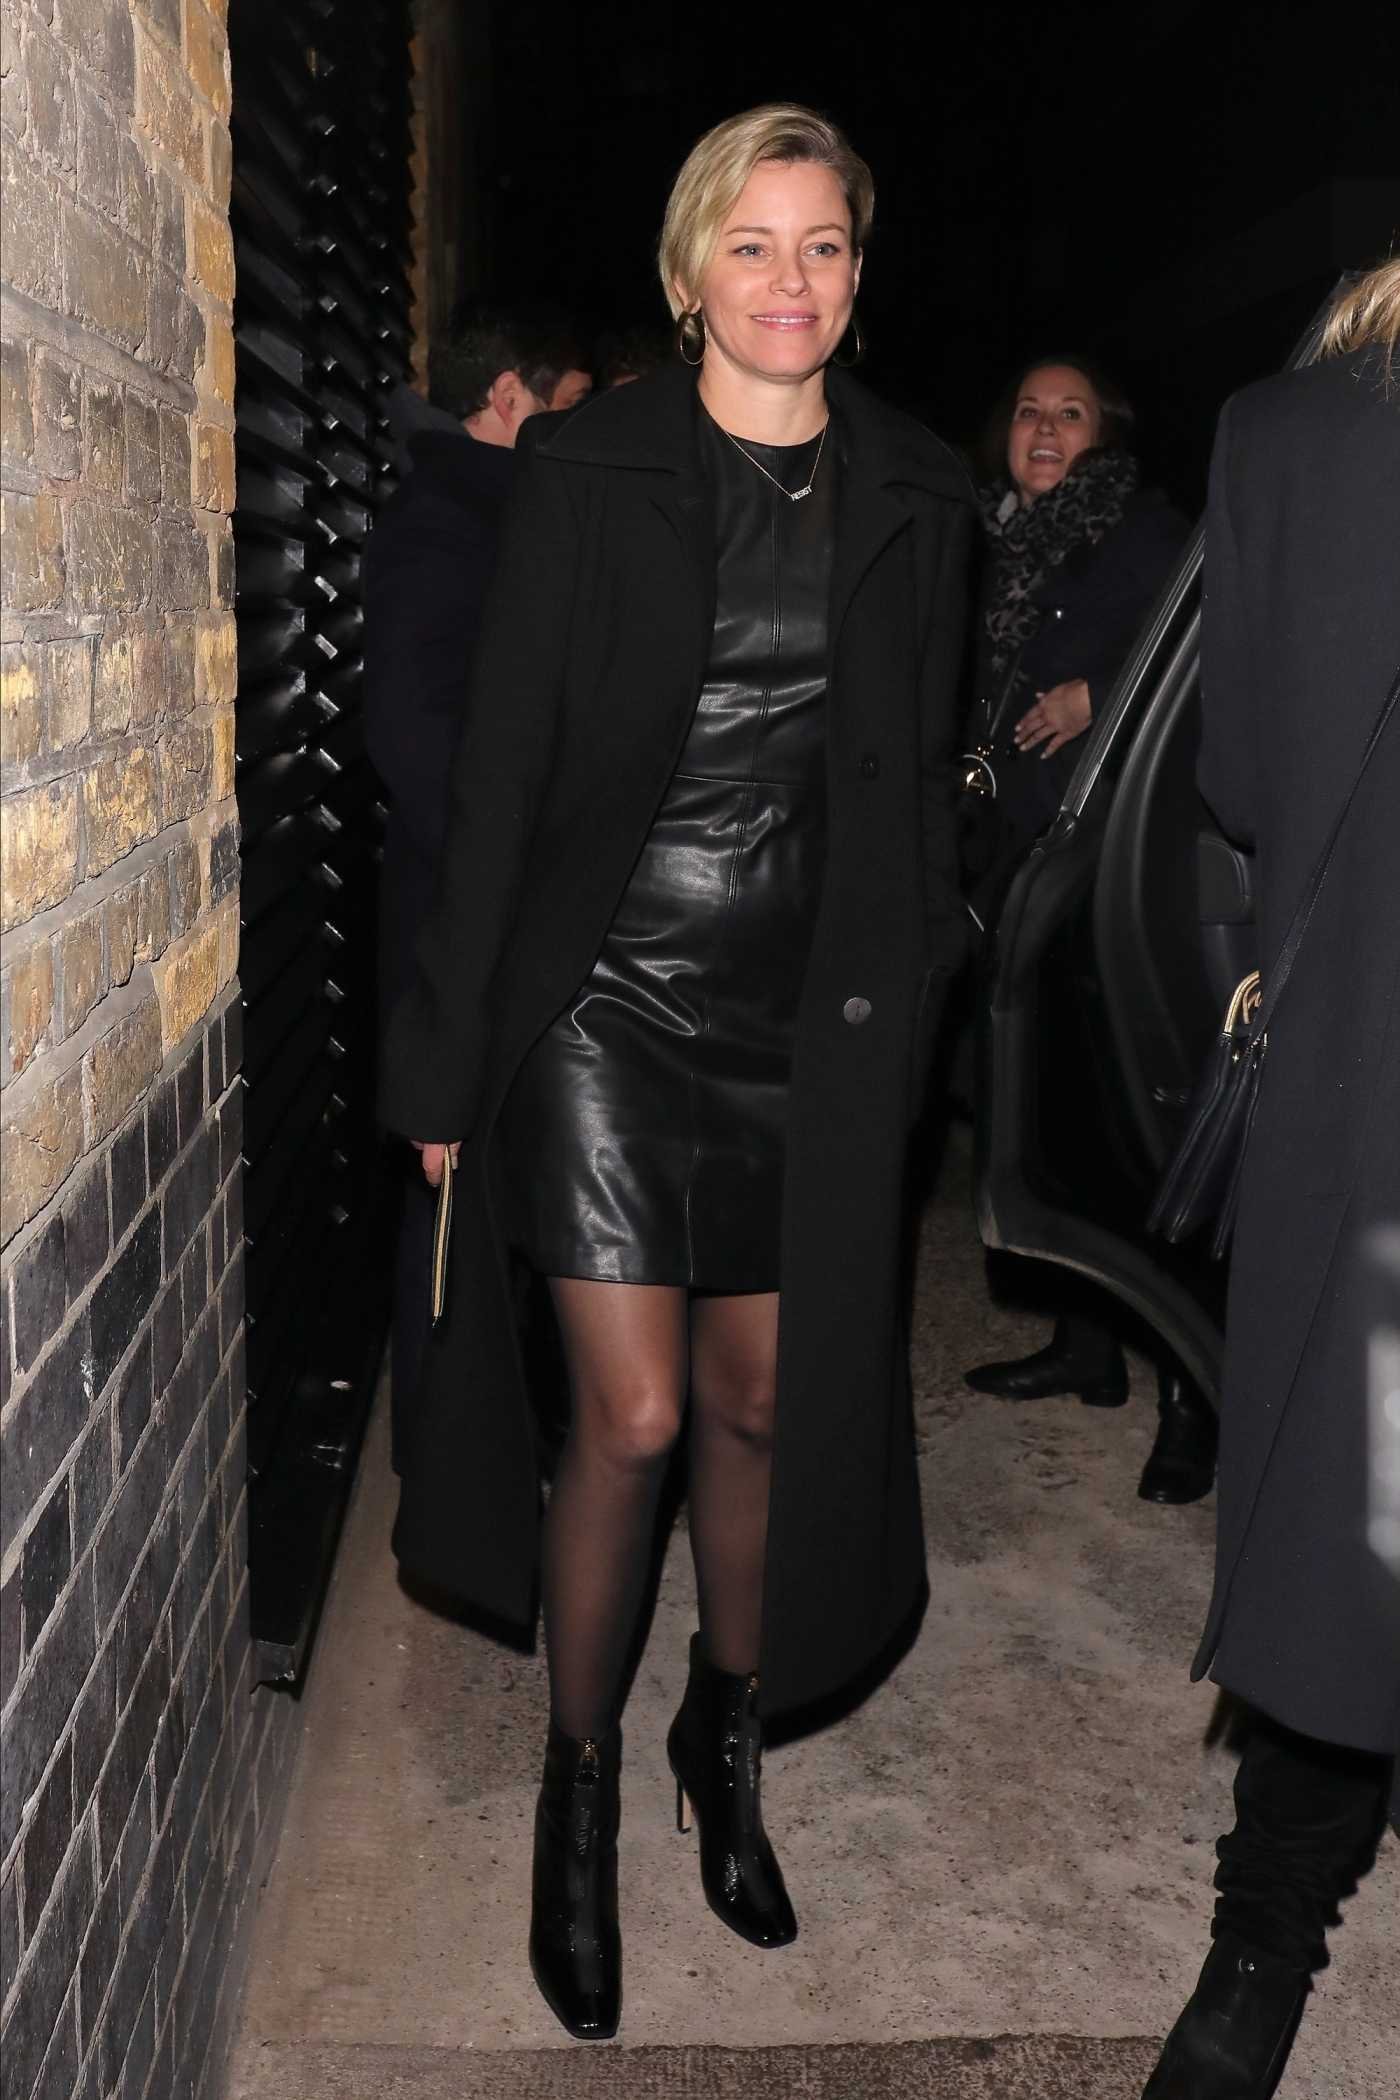 Elizabeth Banks in a Black Coat Leaves the Chiltern Firehouse in London 11/19/2019